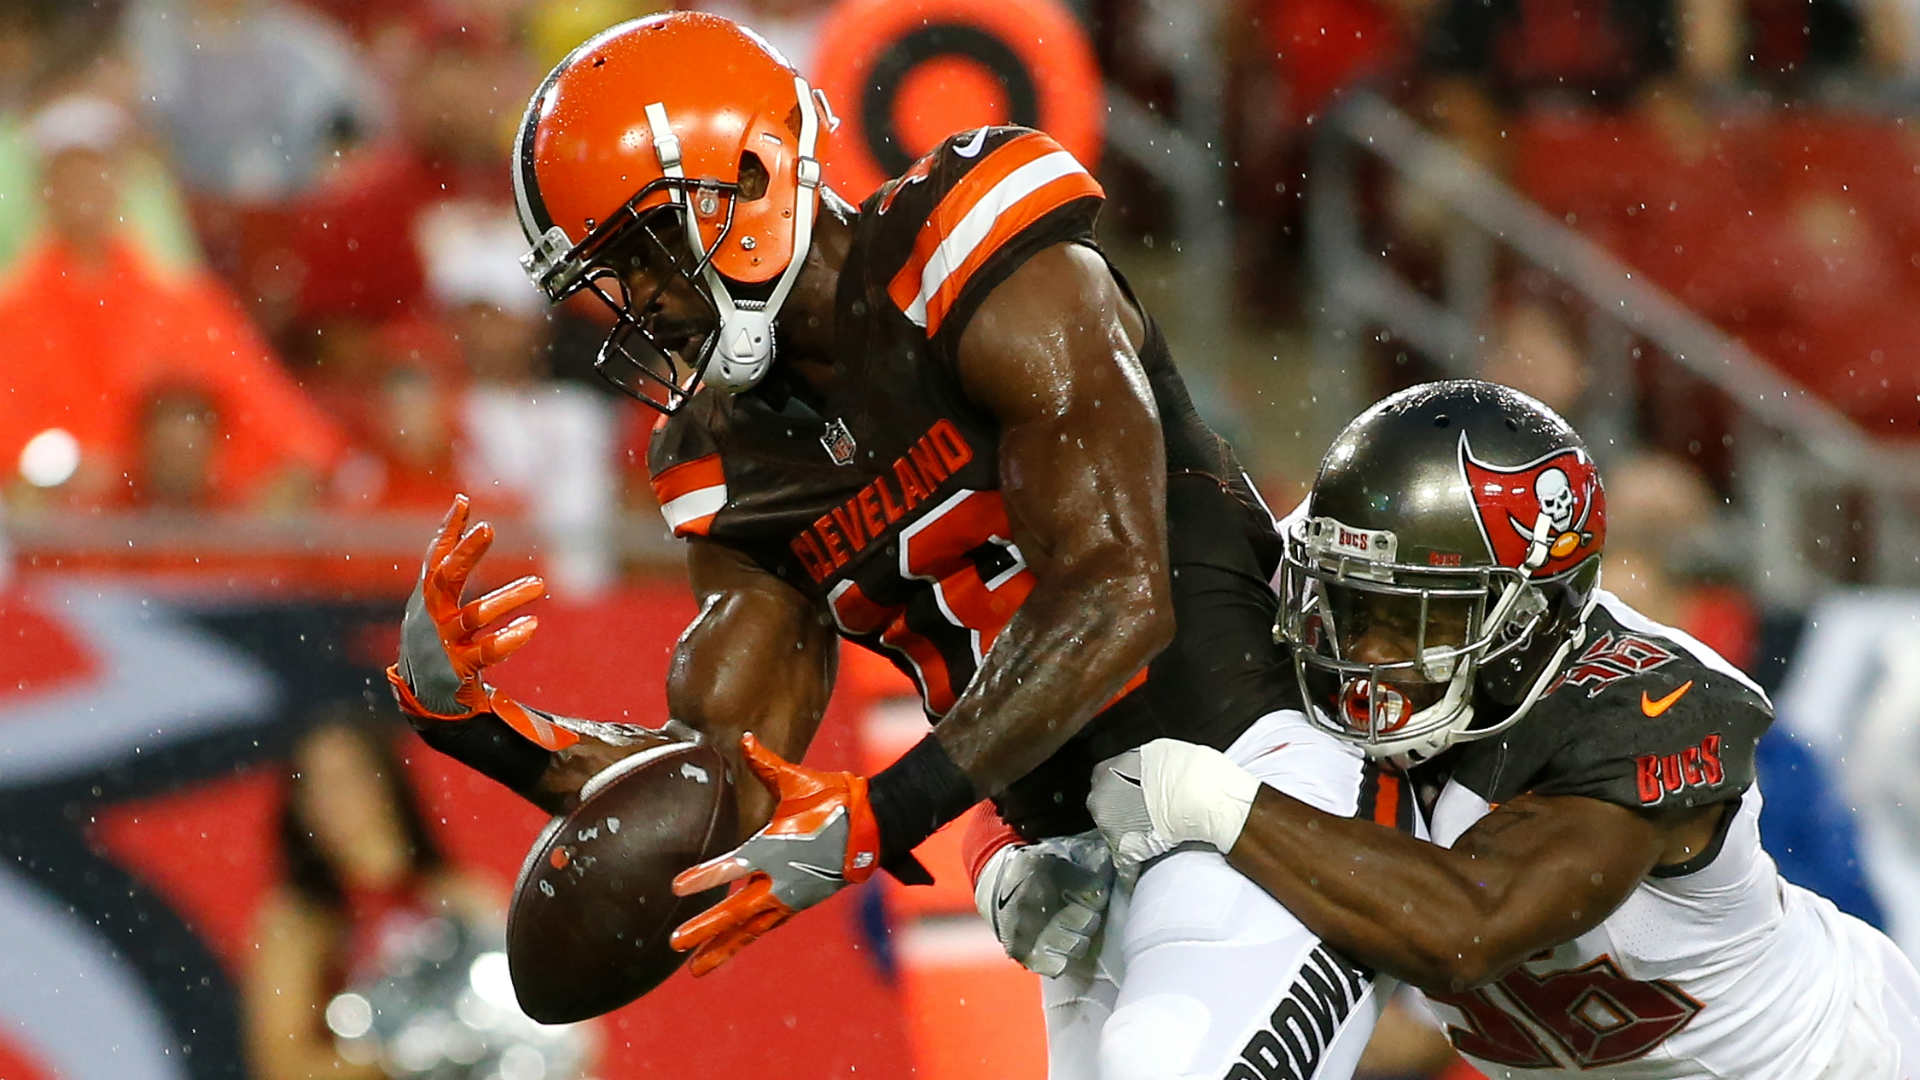 Hue Jackson challenges Kenny Britt to 'step up'